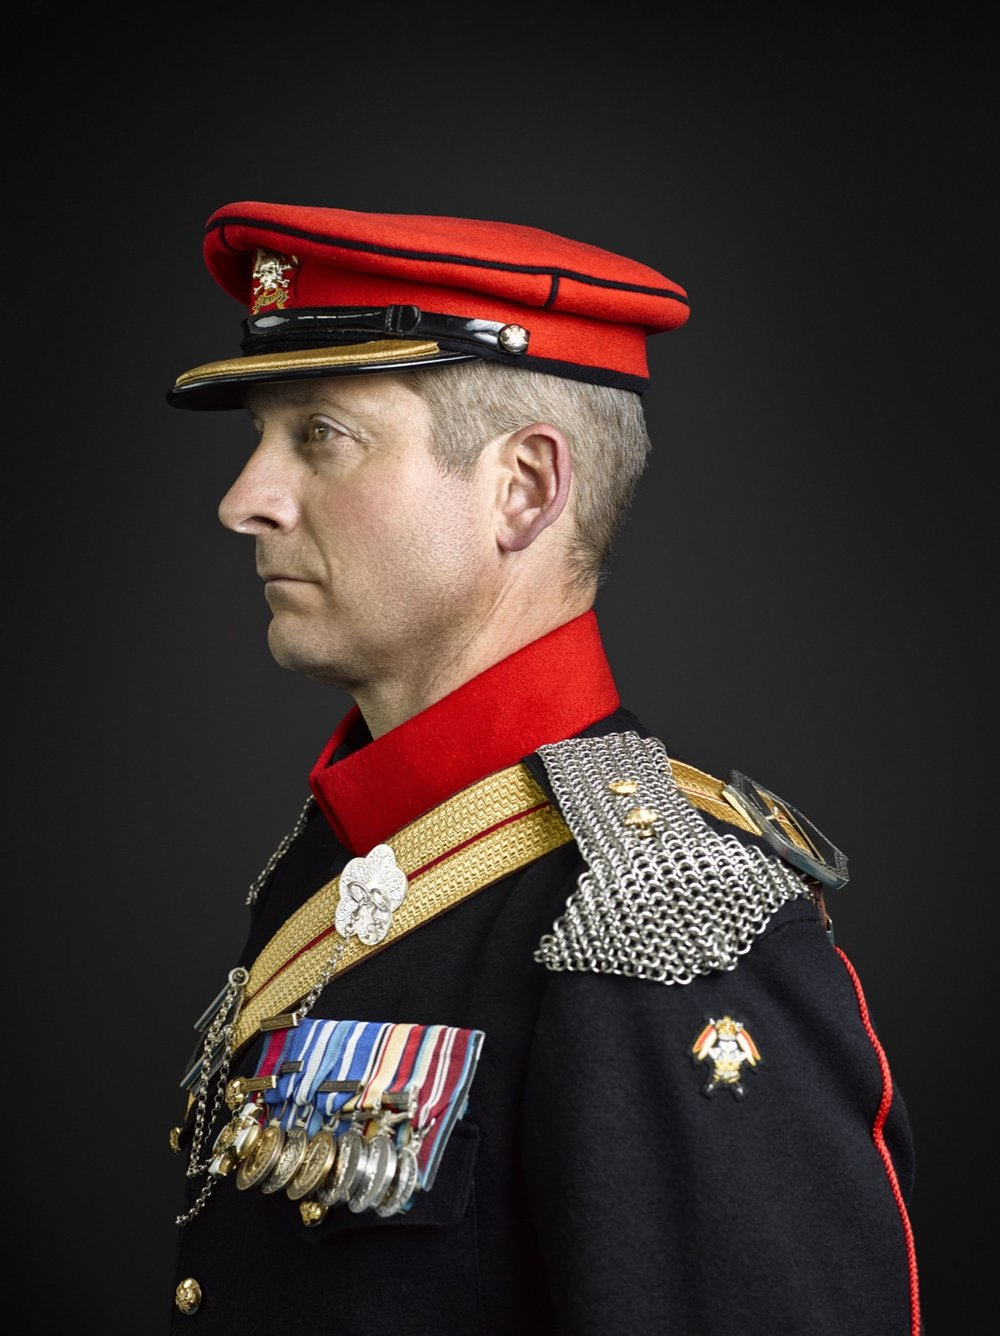 Lt Colonel Mudd DSO The Royal Lancers (Rory Lewis London Portrait Photographer)